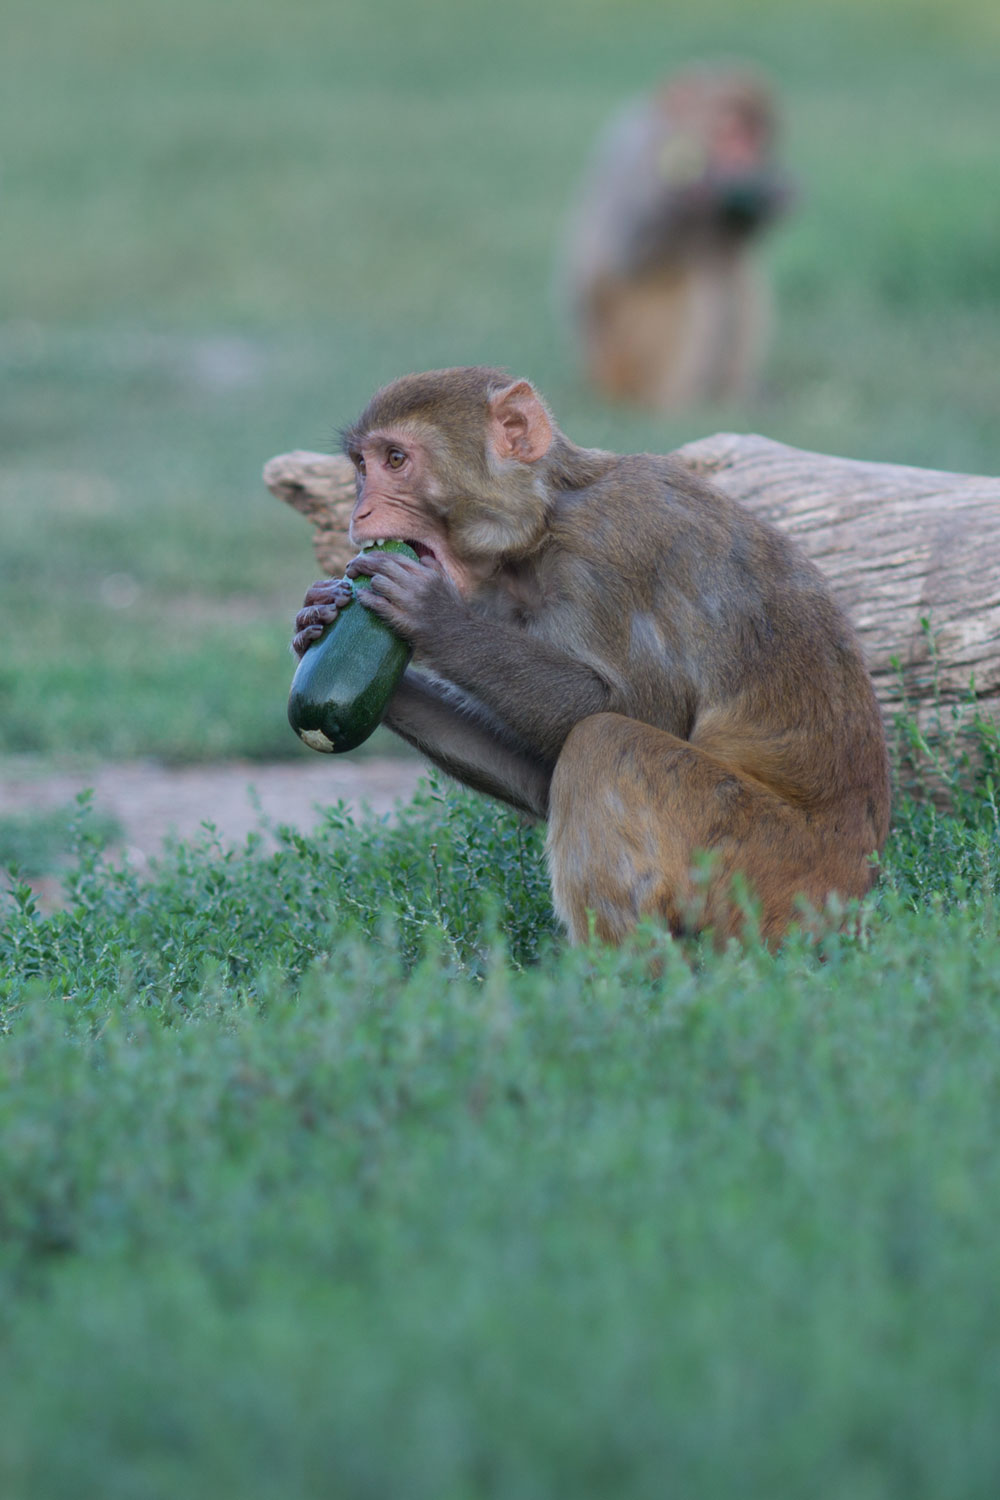 rhesus monkey enjoying a fresh zucchini